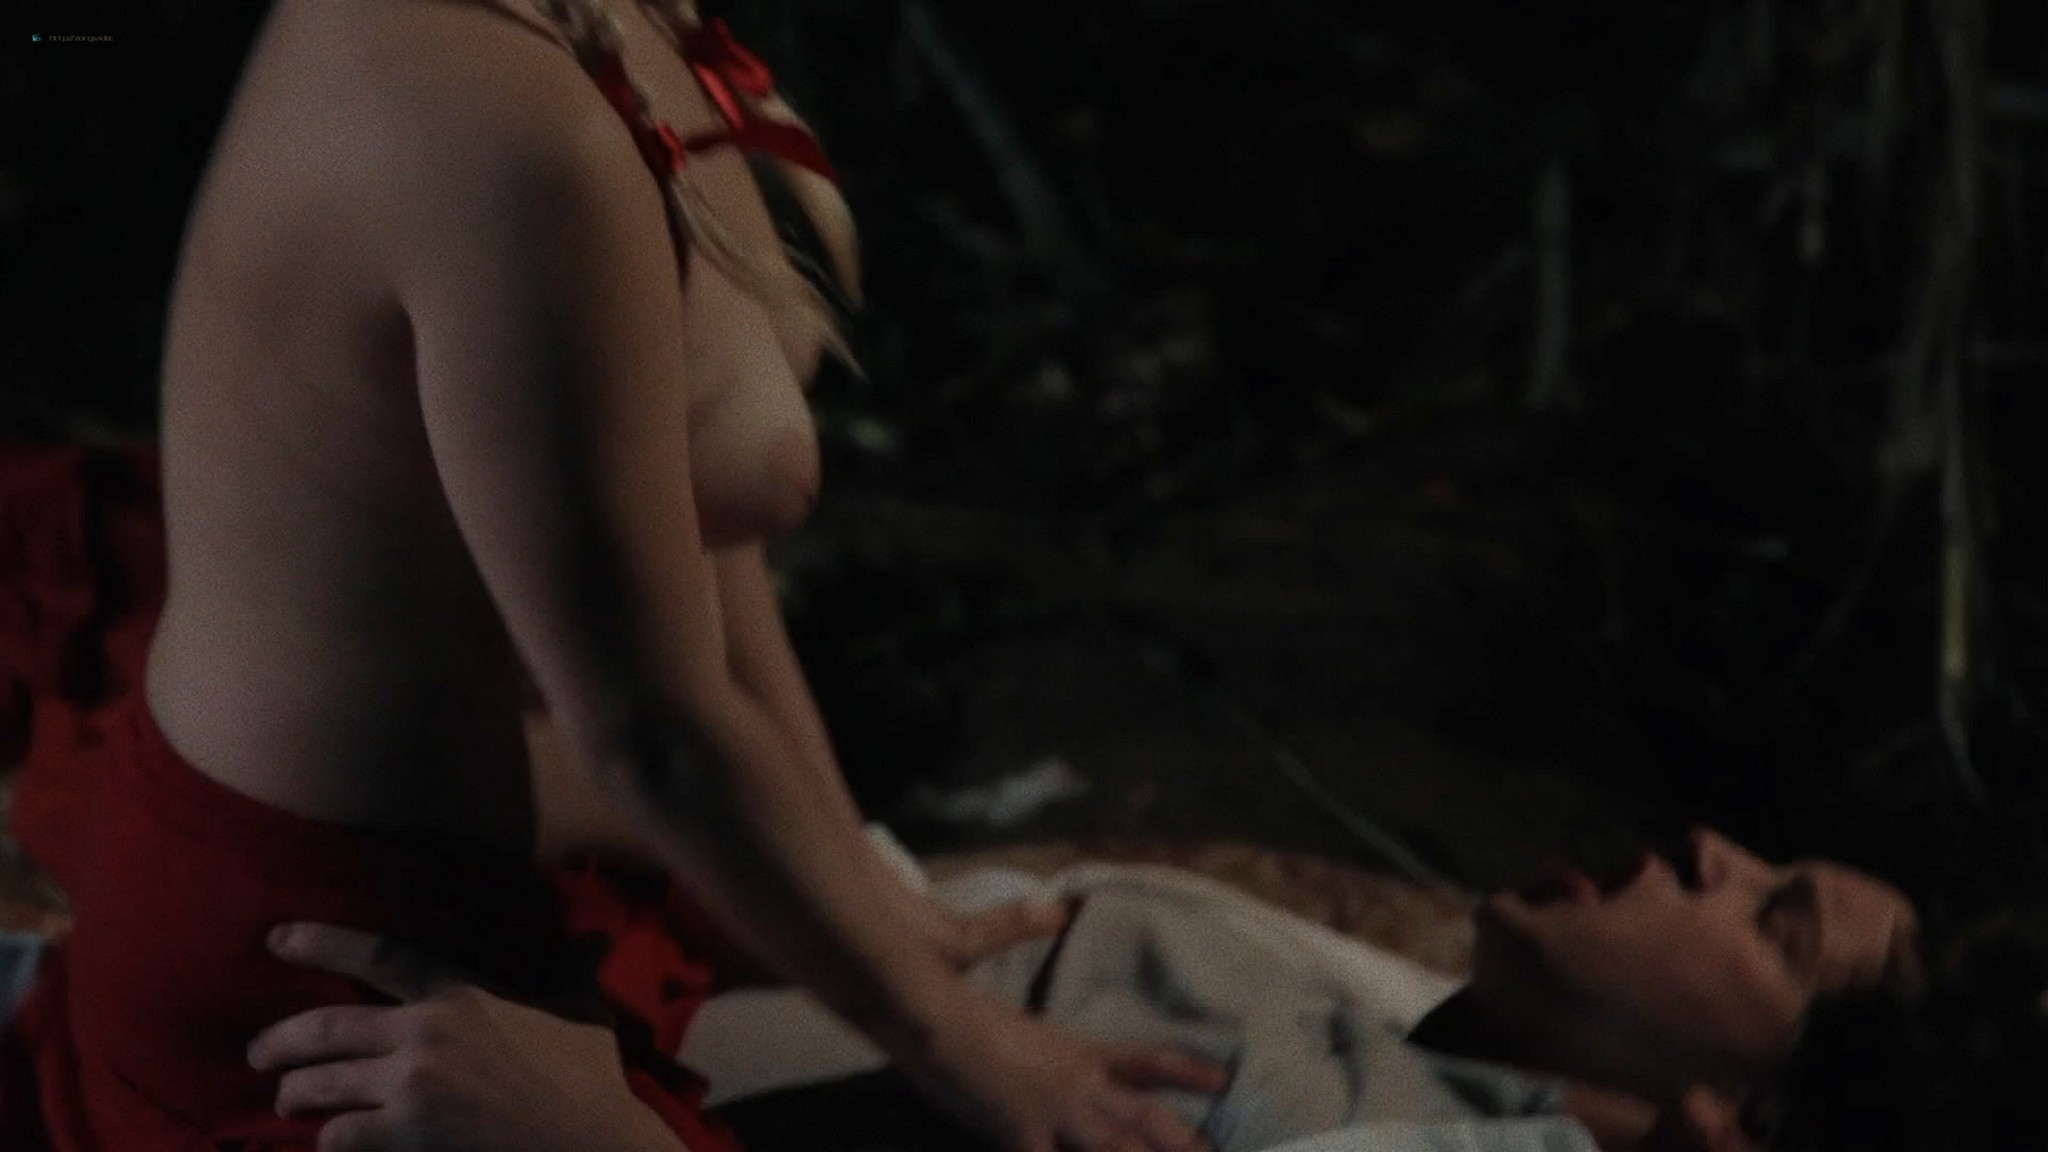 Dawn Sobolewski nude sex Jean Louise O'Sullivan sexy - The Bates Haunting (2012) HD 1080p BluRay (8)